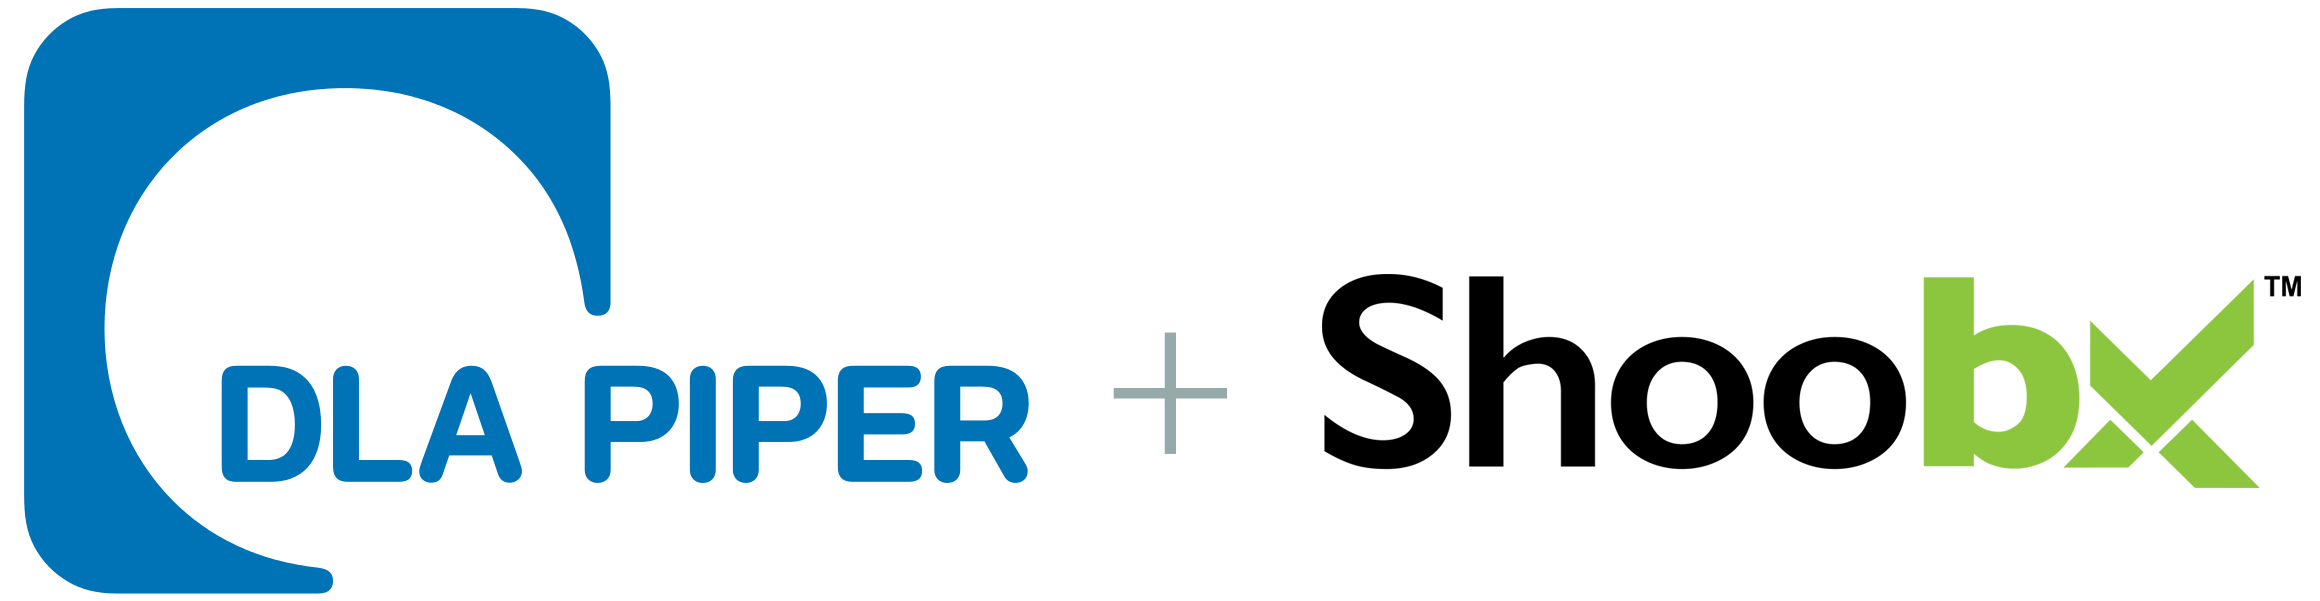 Dla Piper Has Partnered With Shoobx To Make Its Startup Kit Series Of Delaware Incorporation Documents Including Its Stock Incentive Plan And Grant Forms